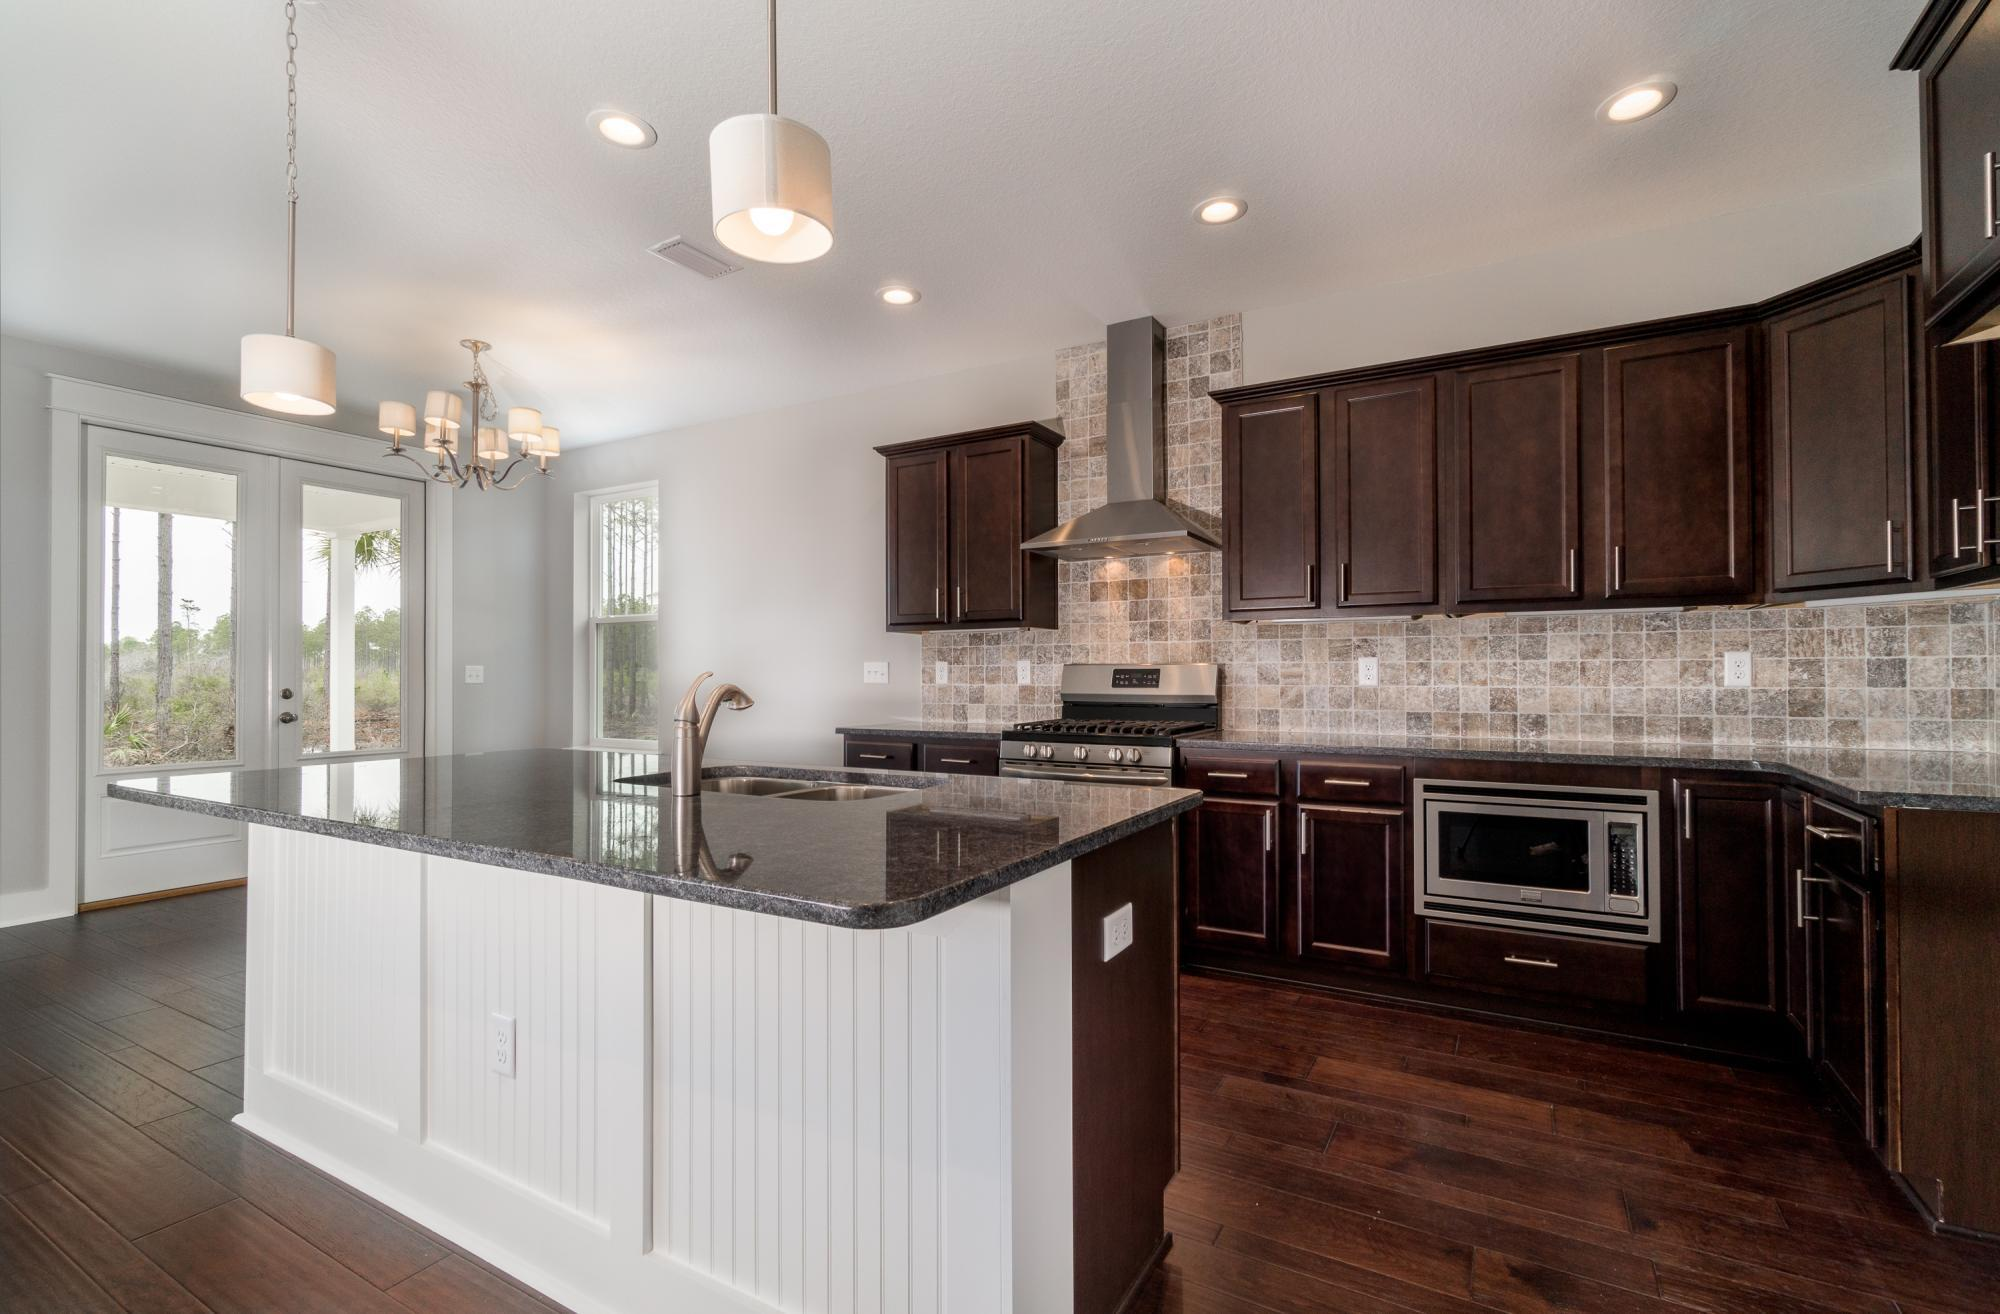 Kitchen featured in the Trigger By Samuel Taylor Homes in Panama City, FL